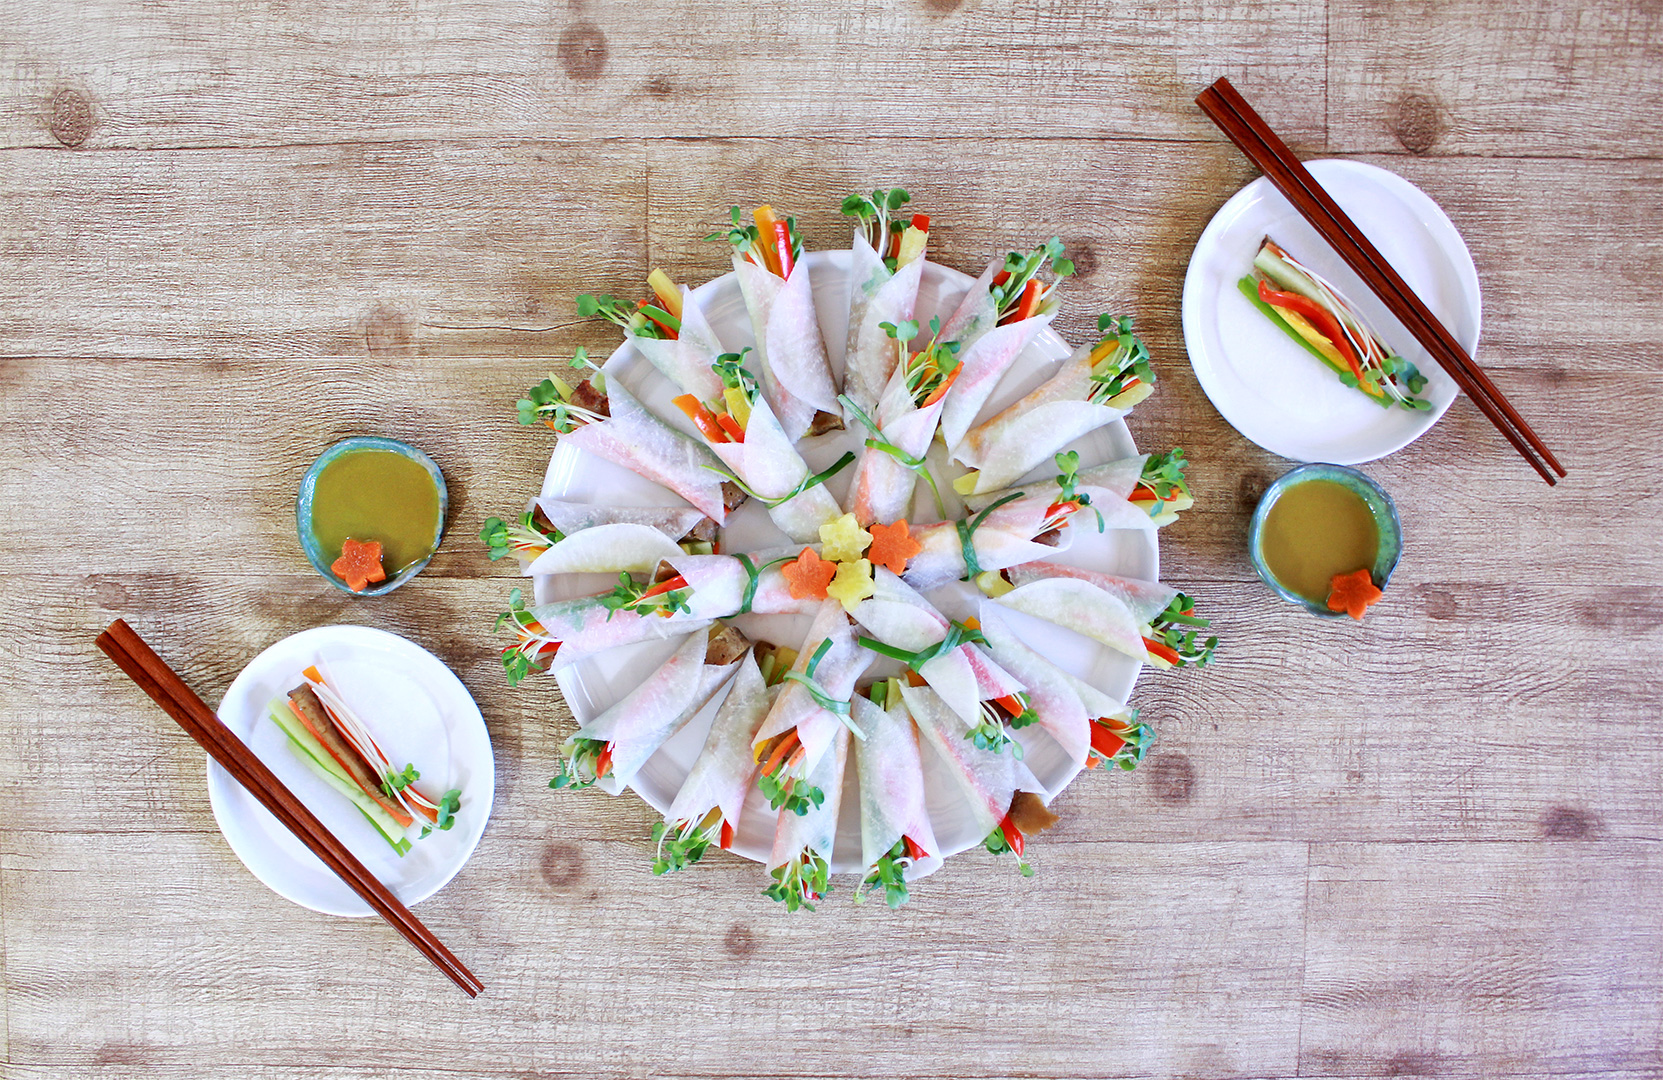 The Korean Ssam Mu Radish Wrap is a delicious and healthy appetizer or light meal balancing savory vegetables and the tang of vinegar and spicy mustard sauce!